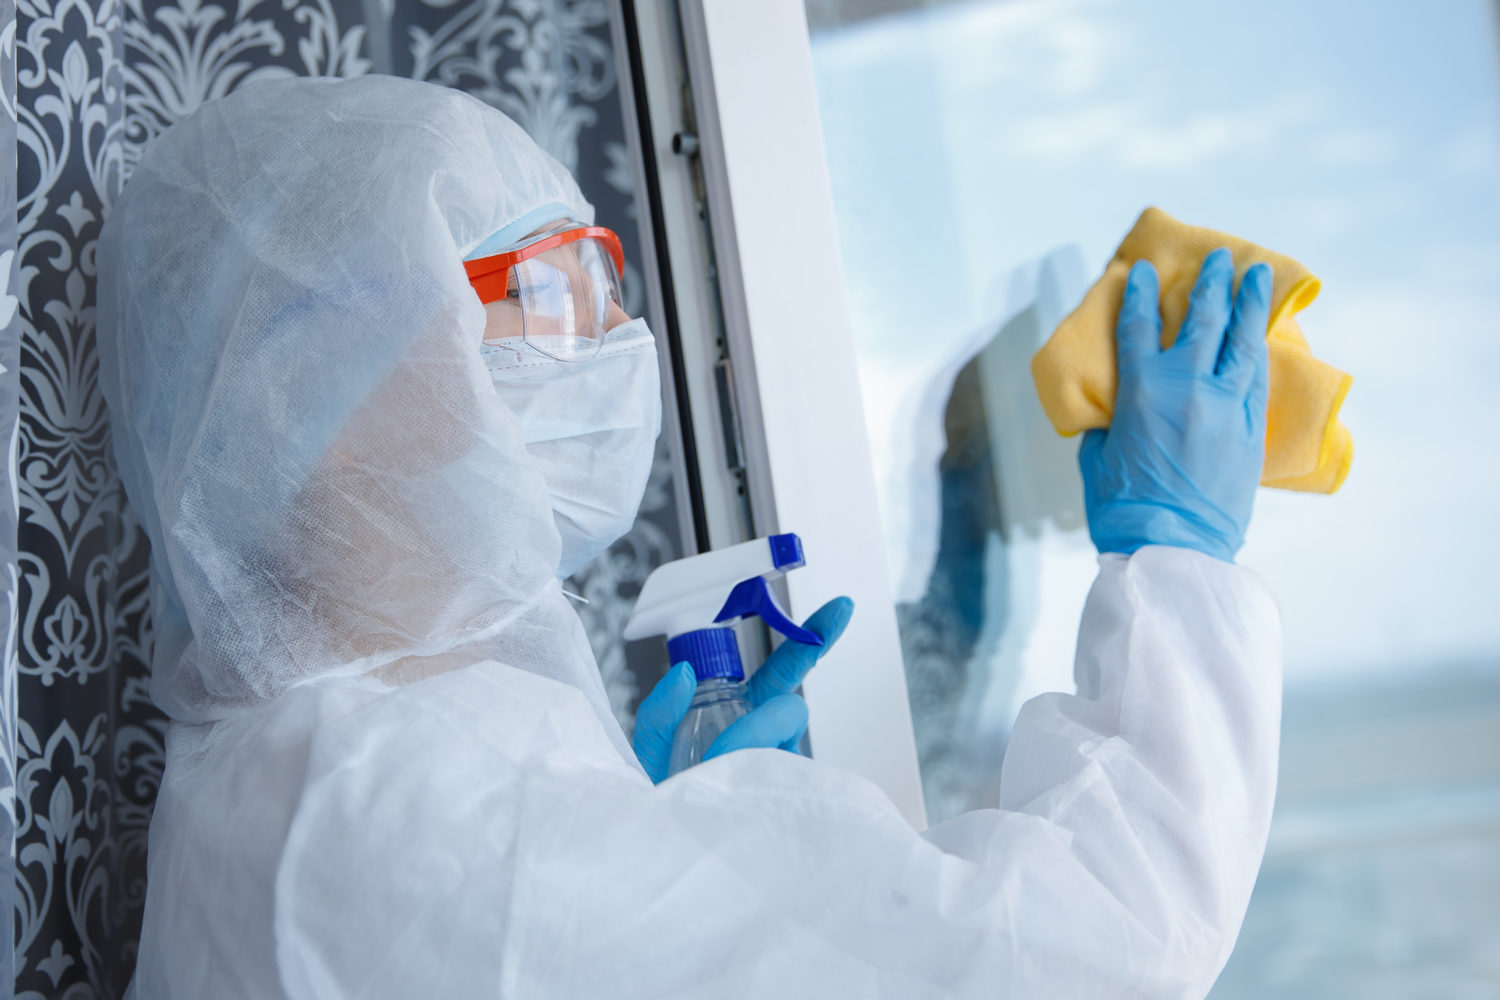 Woman wearing protective biohazard gear cleaning a window